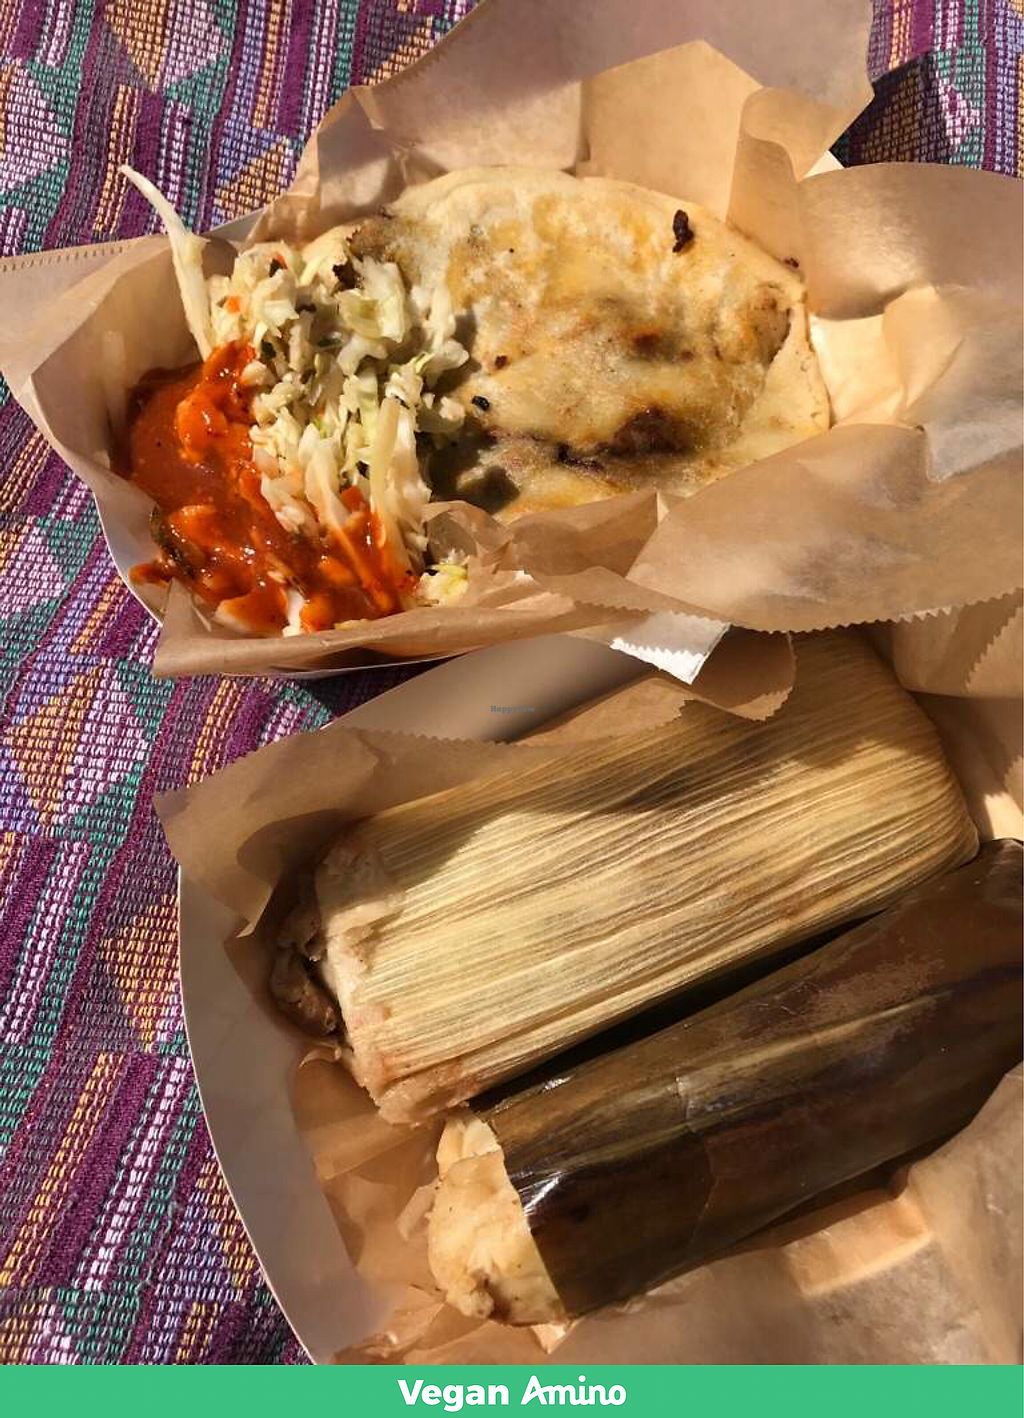 """Photo of Mama's International Tamales  by <a href=""""/members/profile/LoneCrone"""">LoneCrone</a> <br/>Mamas Tamales <br/> July 30, 2017  - <a href='/contact/abuse/image/26666/286482'>Report</a>"""